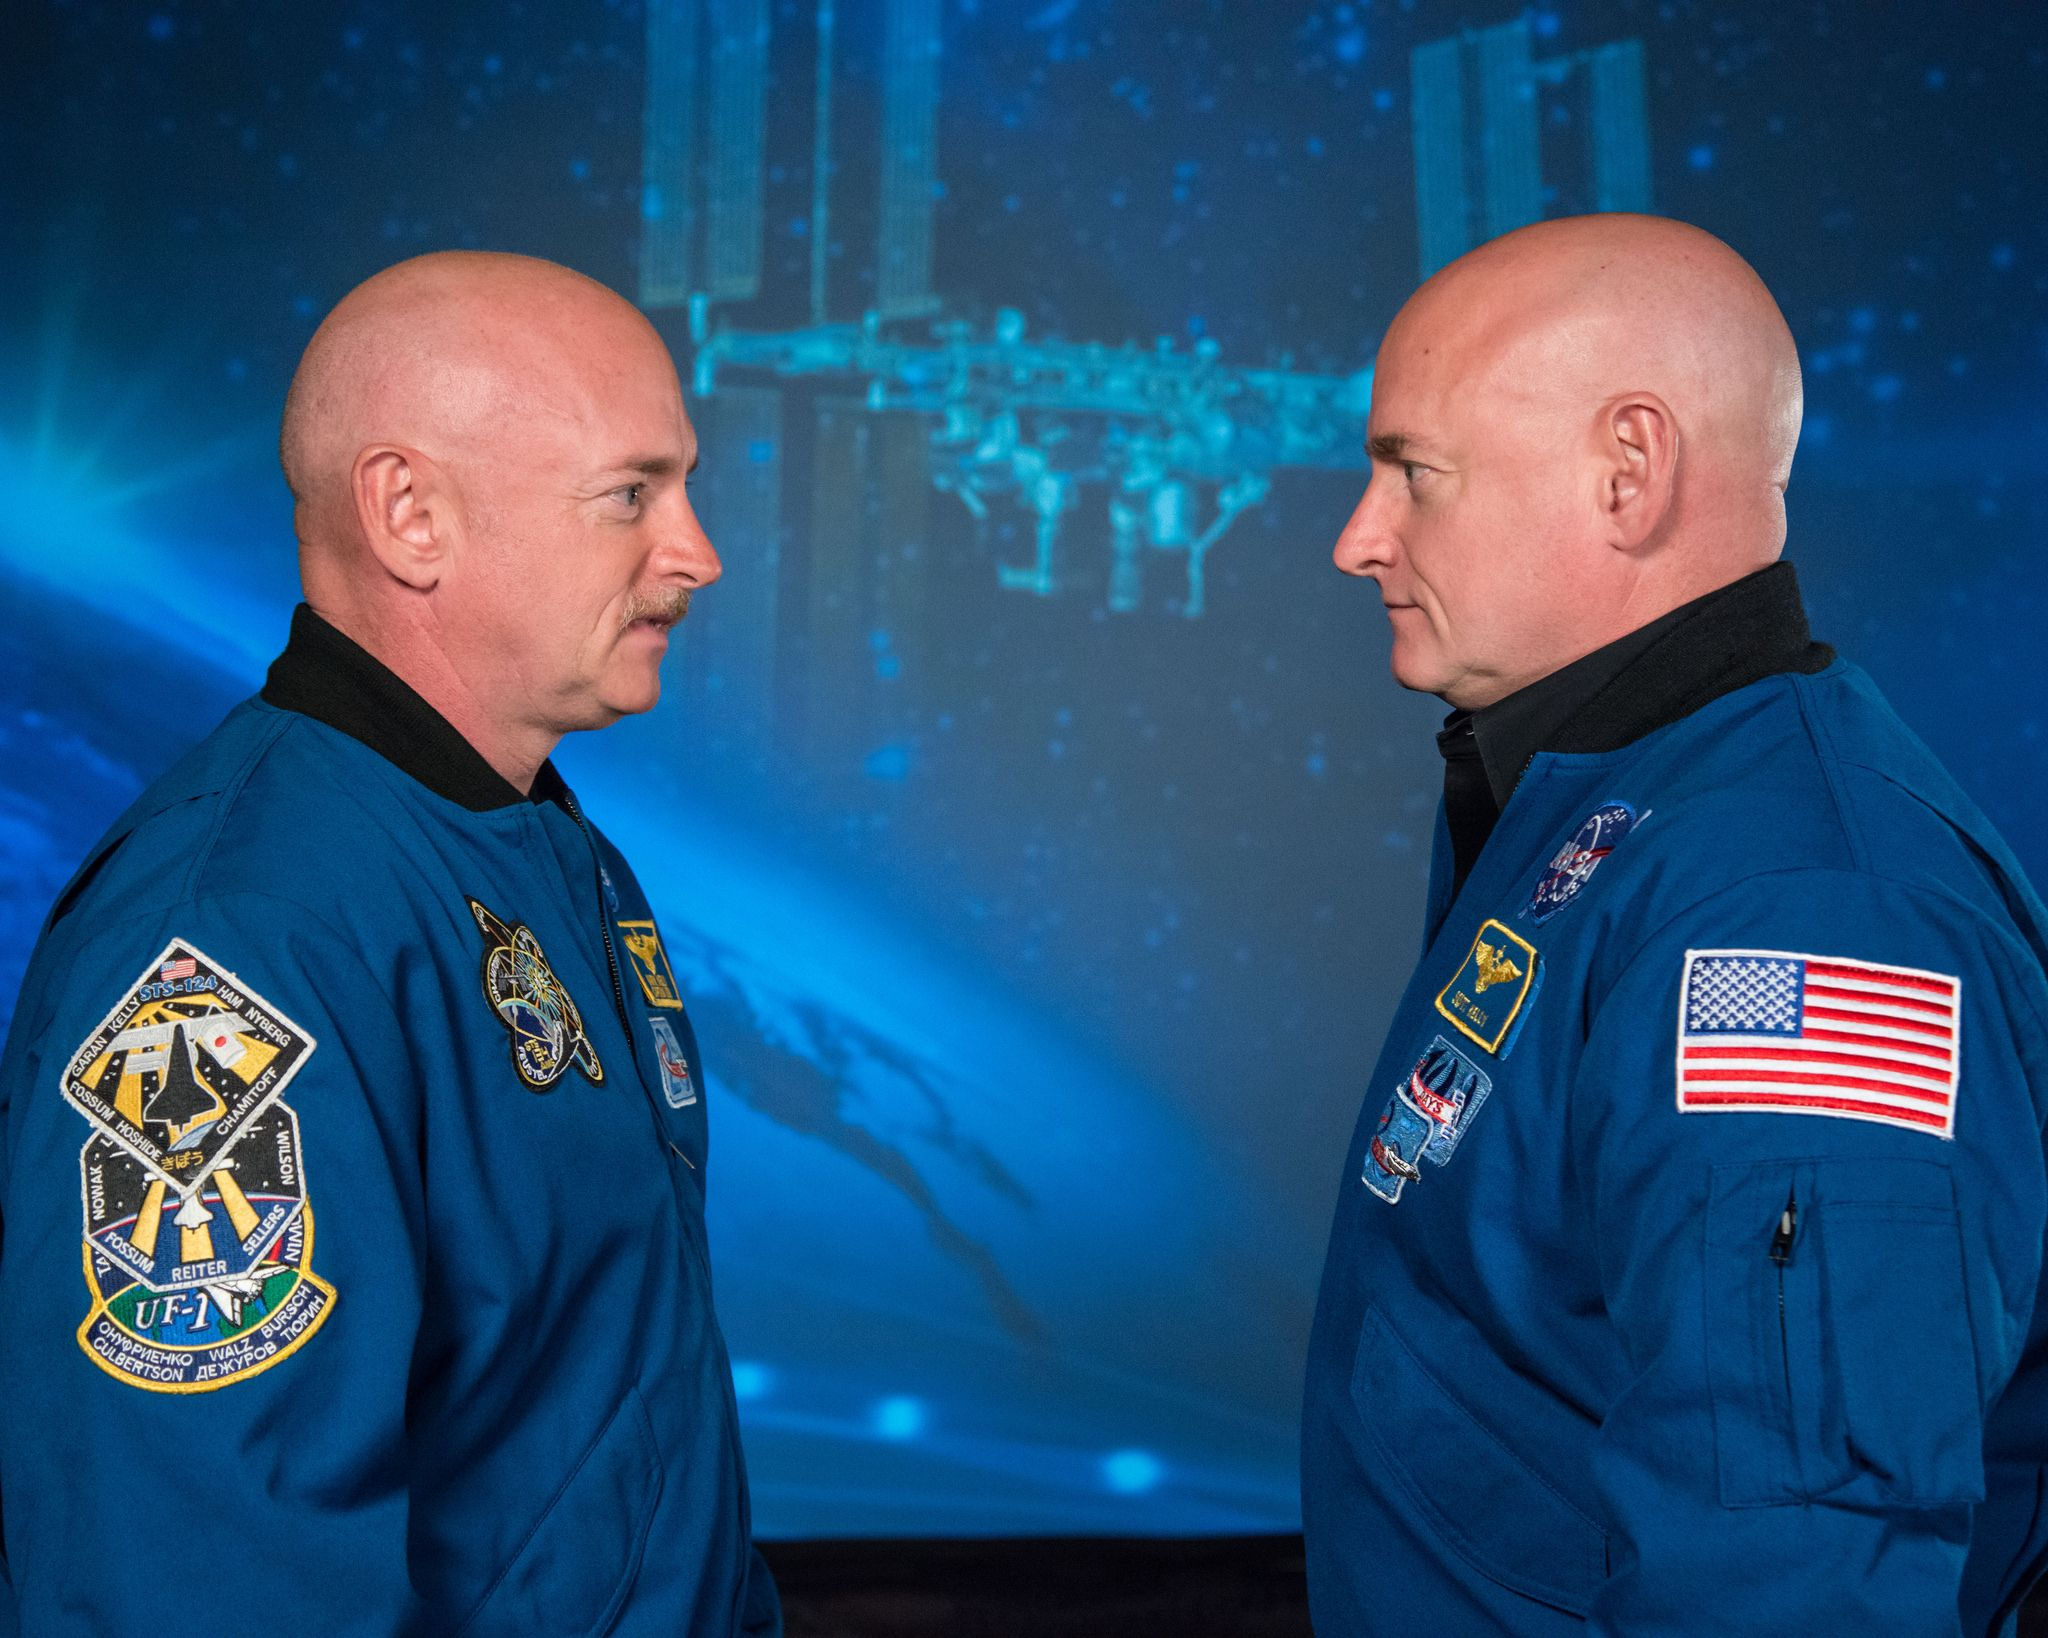 3-17-16 Scott Kelly and Mark Kelly